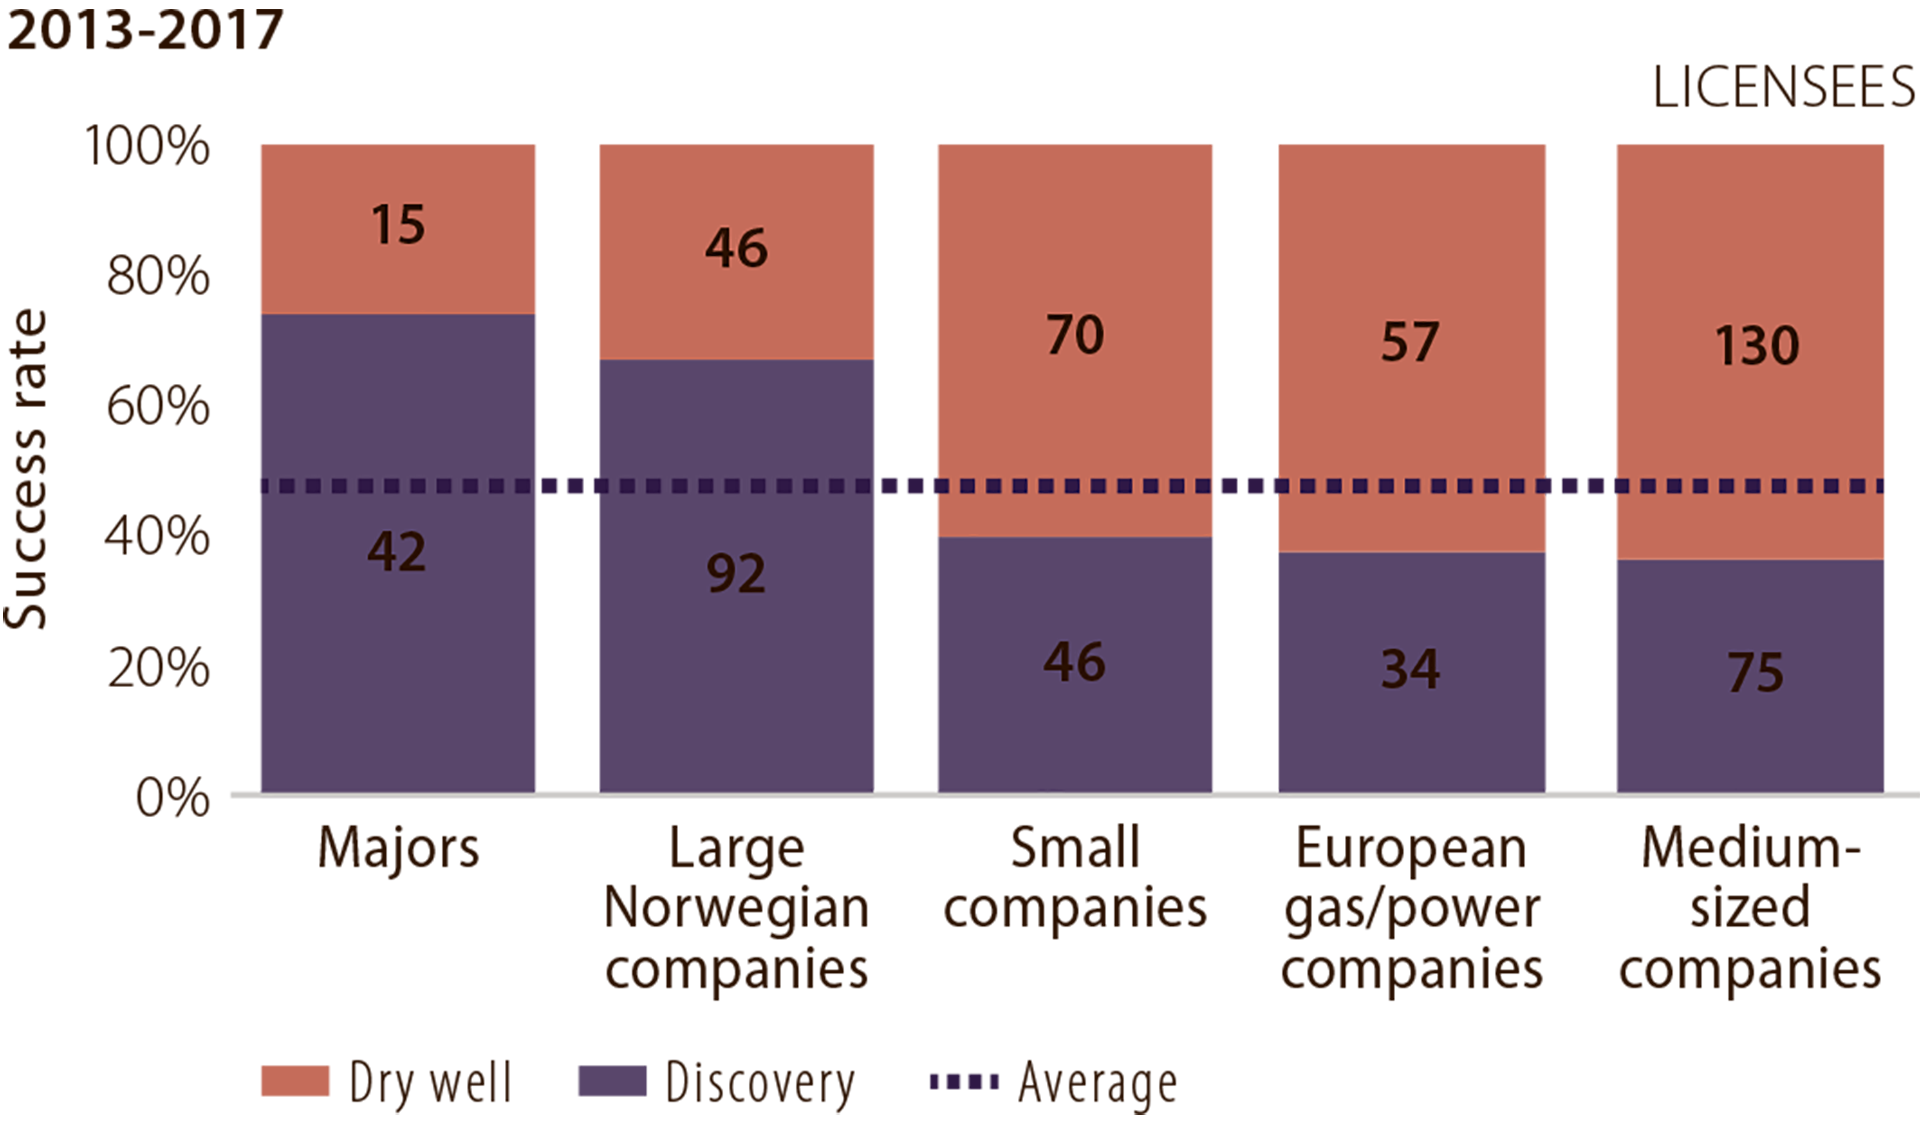 Figure 5.11 Success rate in 2013-17 by company category (licensees).